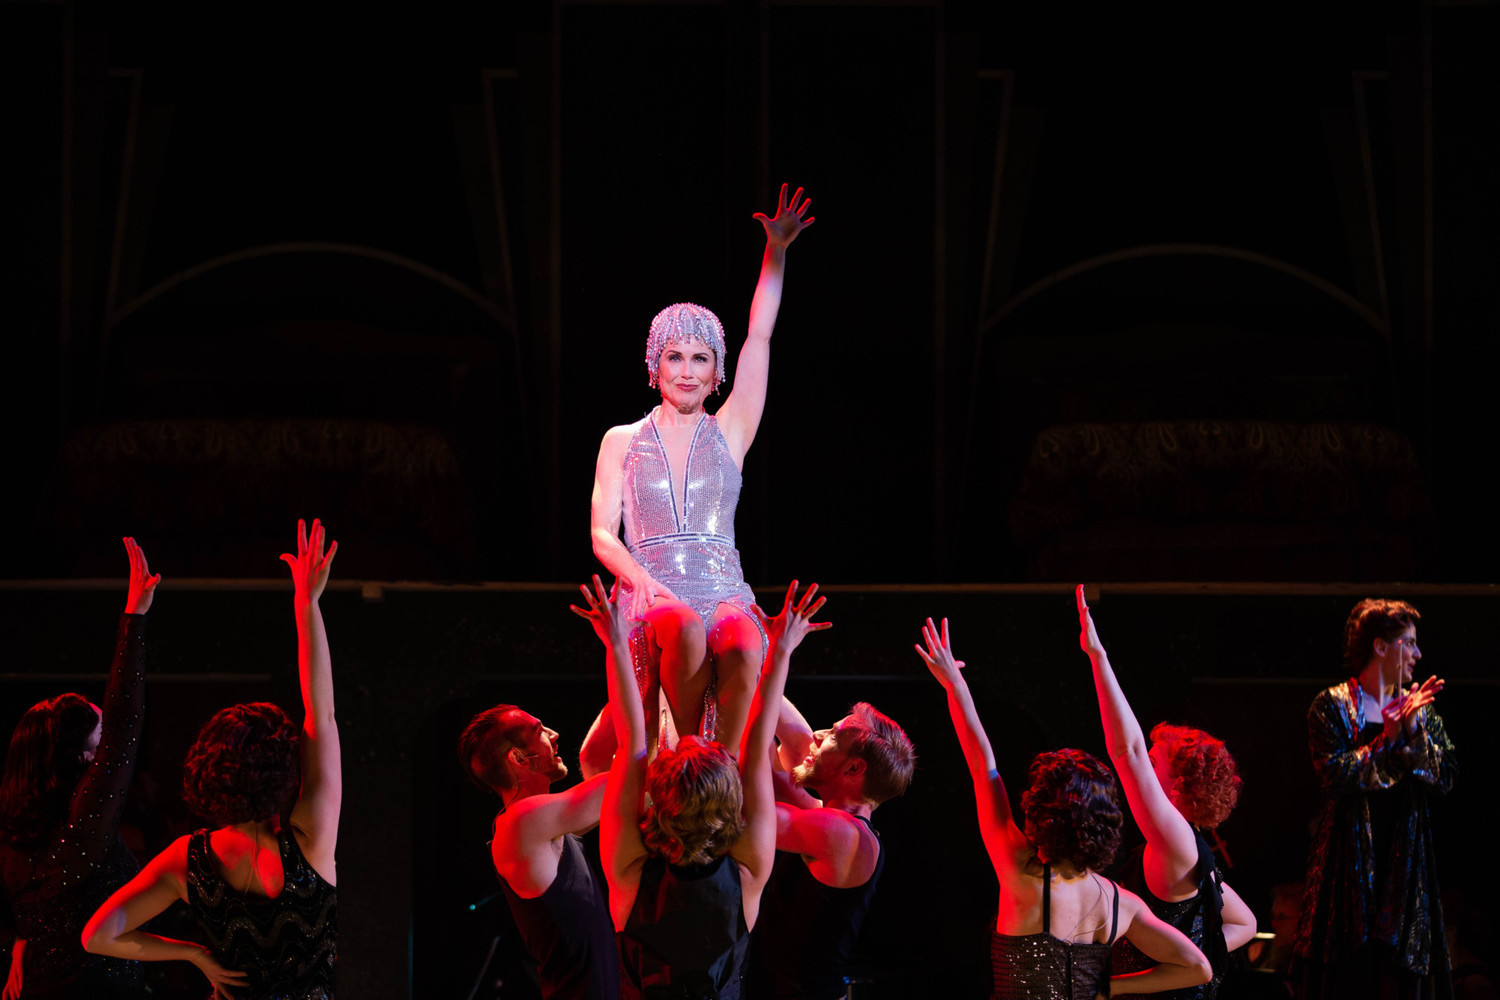 BWW Review: VICTOR/VICTORIA at Artistry